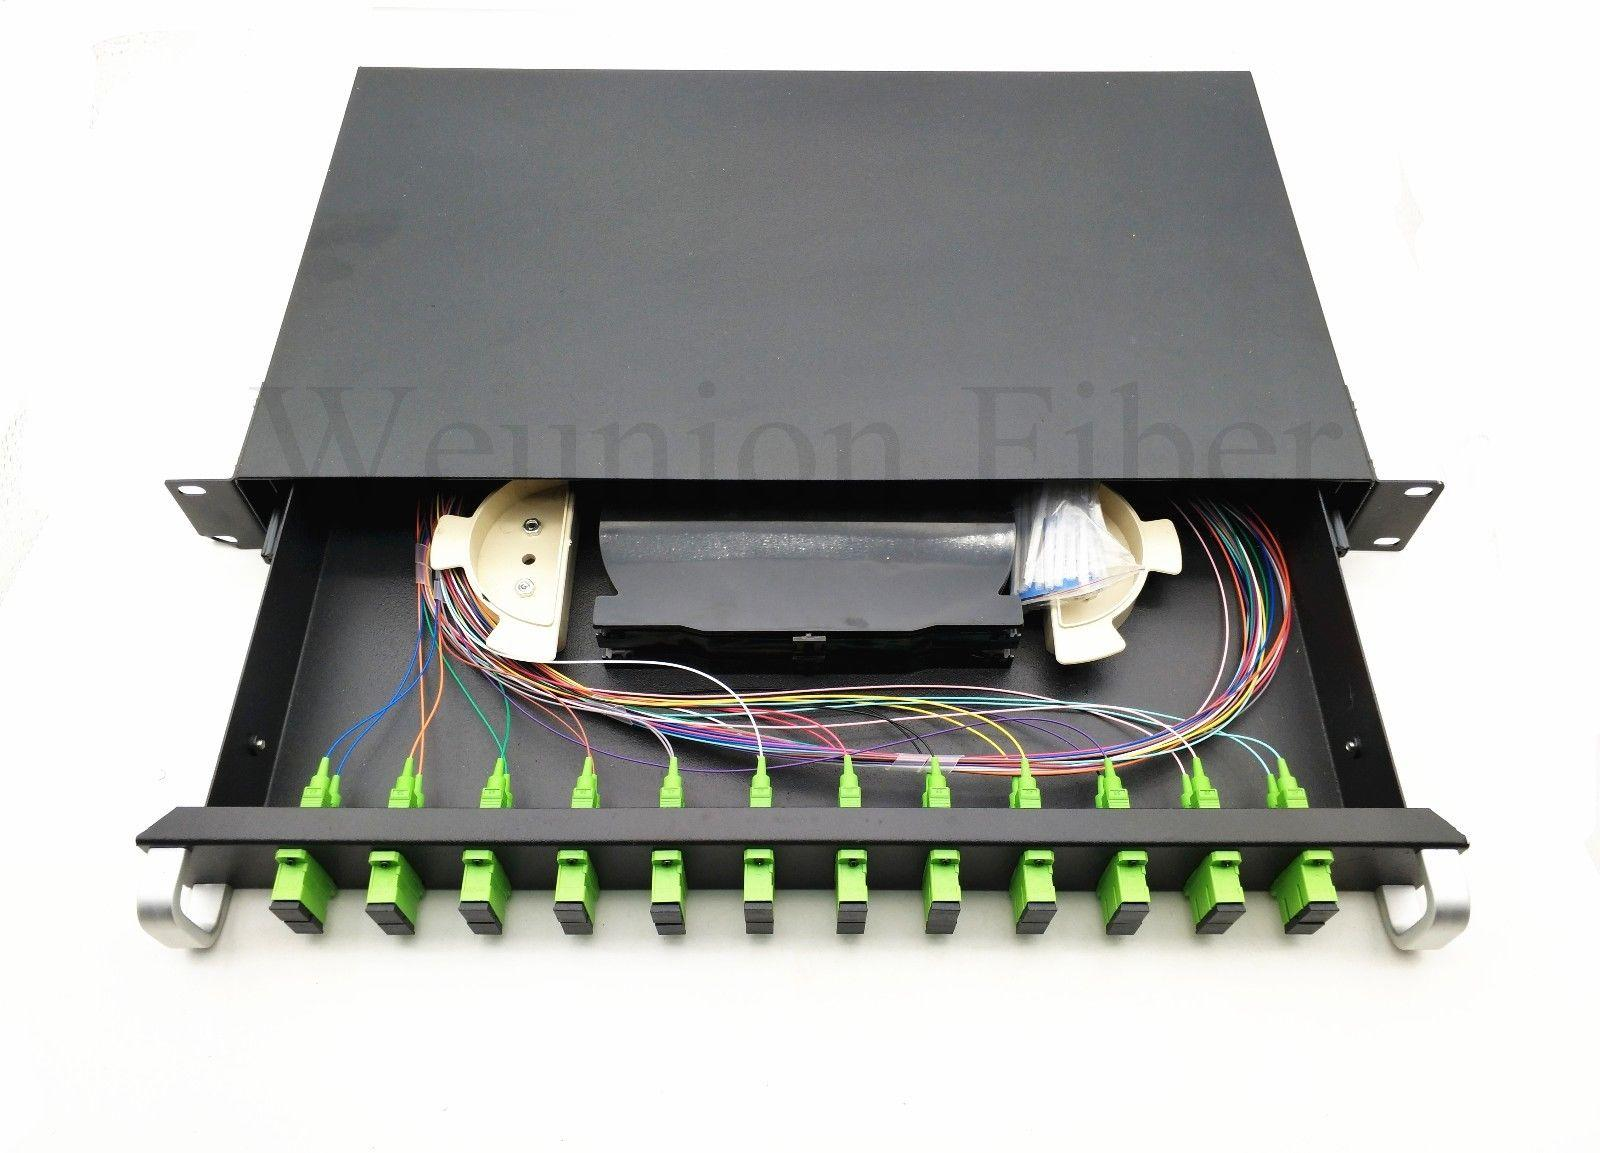 24 Ports Fiber Patch Panel 19 inch Rack Mount Patch Panel with Adapters Pigtail